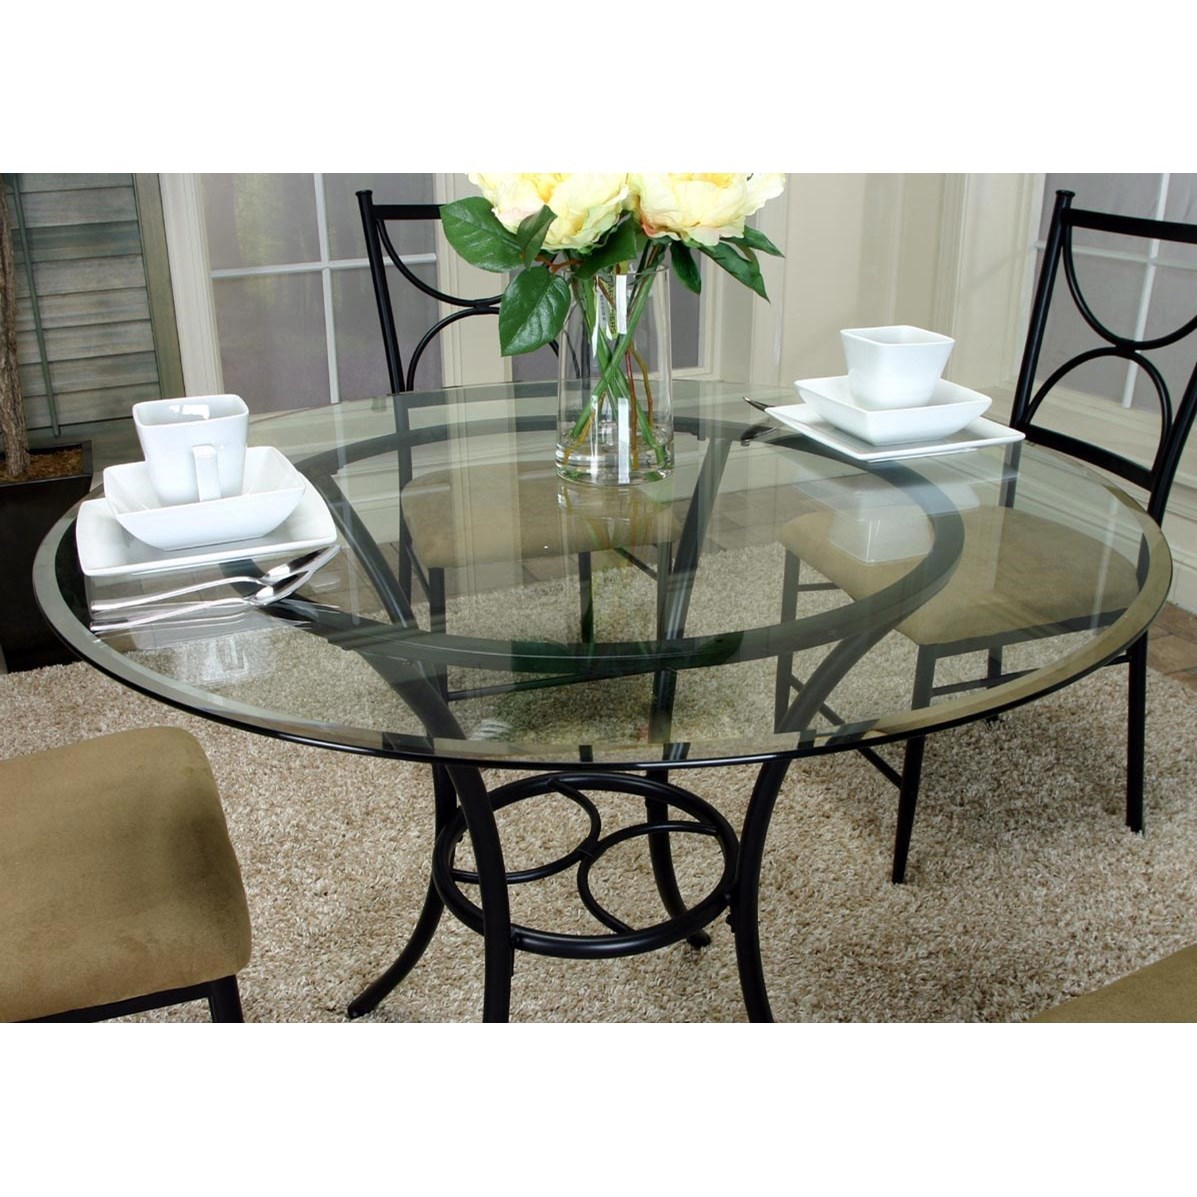 Cramco Inc Hudson 5 Piece Round Glass Top Table Set  : products2Fcramco2Cinc2Fcolor2Fhudsonw2230w2230 702B41 b3 from www.valuecitynj.com size 1197 x 1197 jpeg 253kB